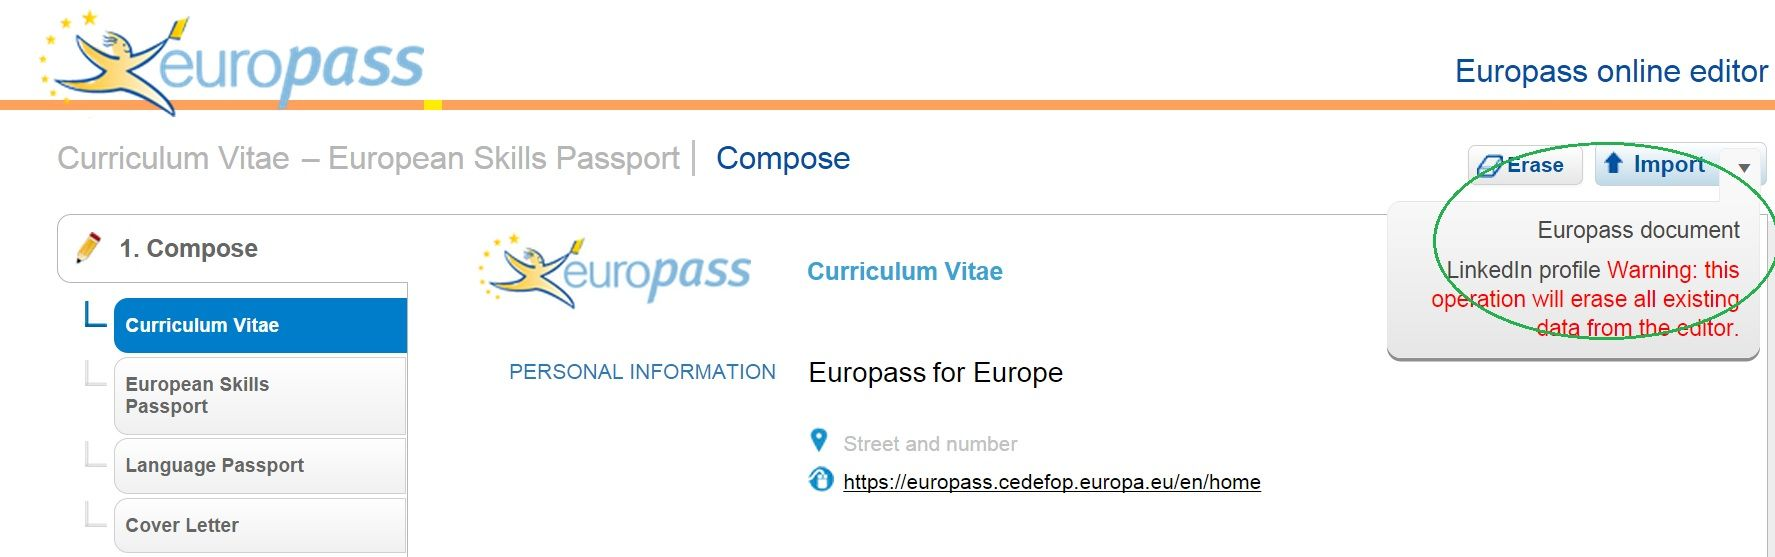 download your  linkedin profile into your  europass